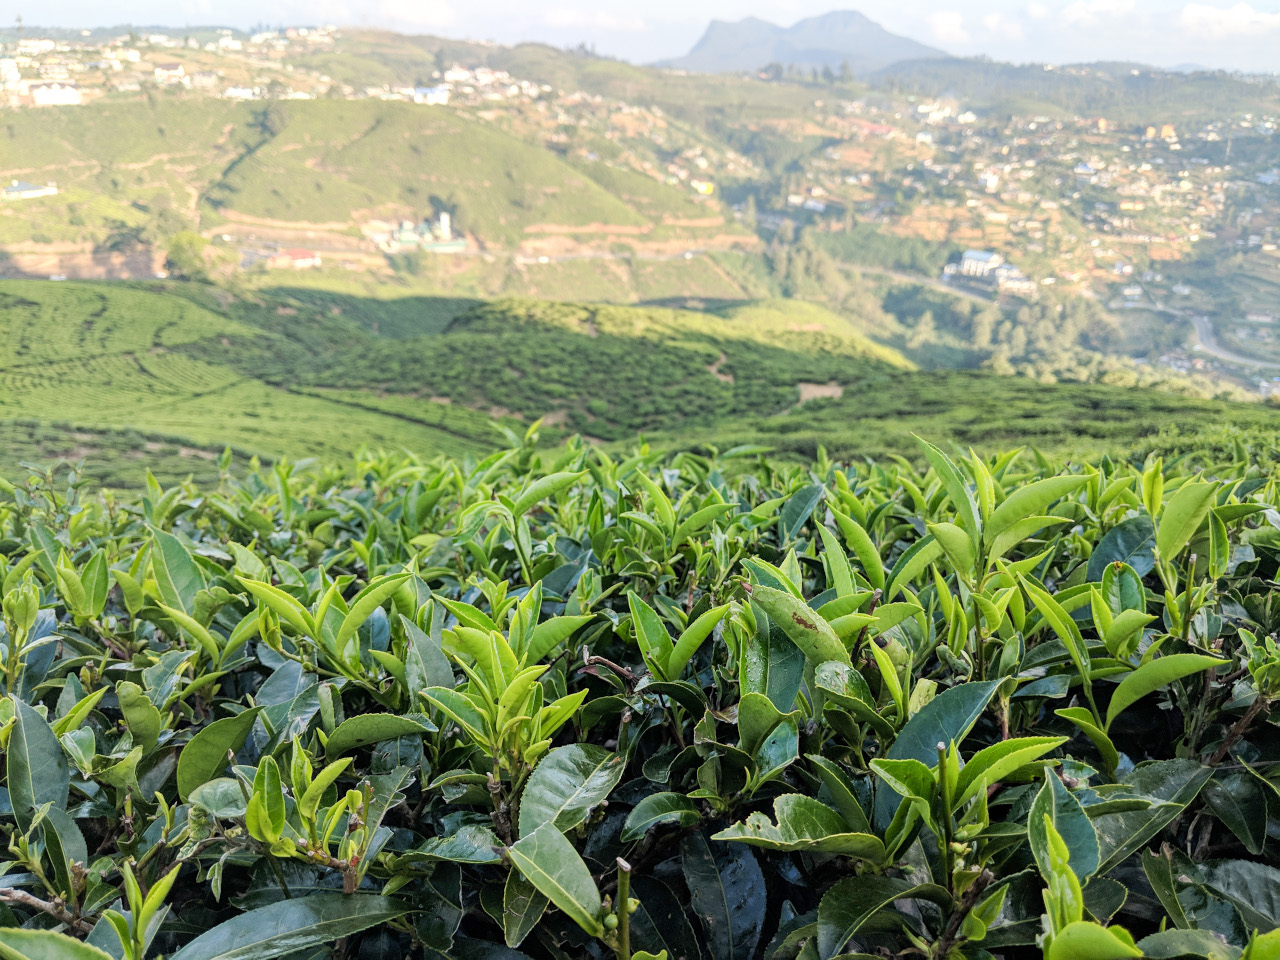 Nuwara Eliya Single Tree Hill tea bushes, Sri Lanka,. Visiting Sri Lanka and wondering what to eat in Sri Lanka? Discover the best foods in Sri Lanka!